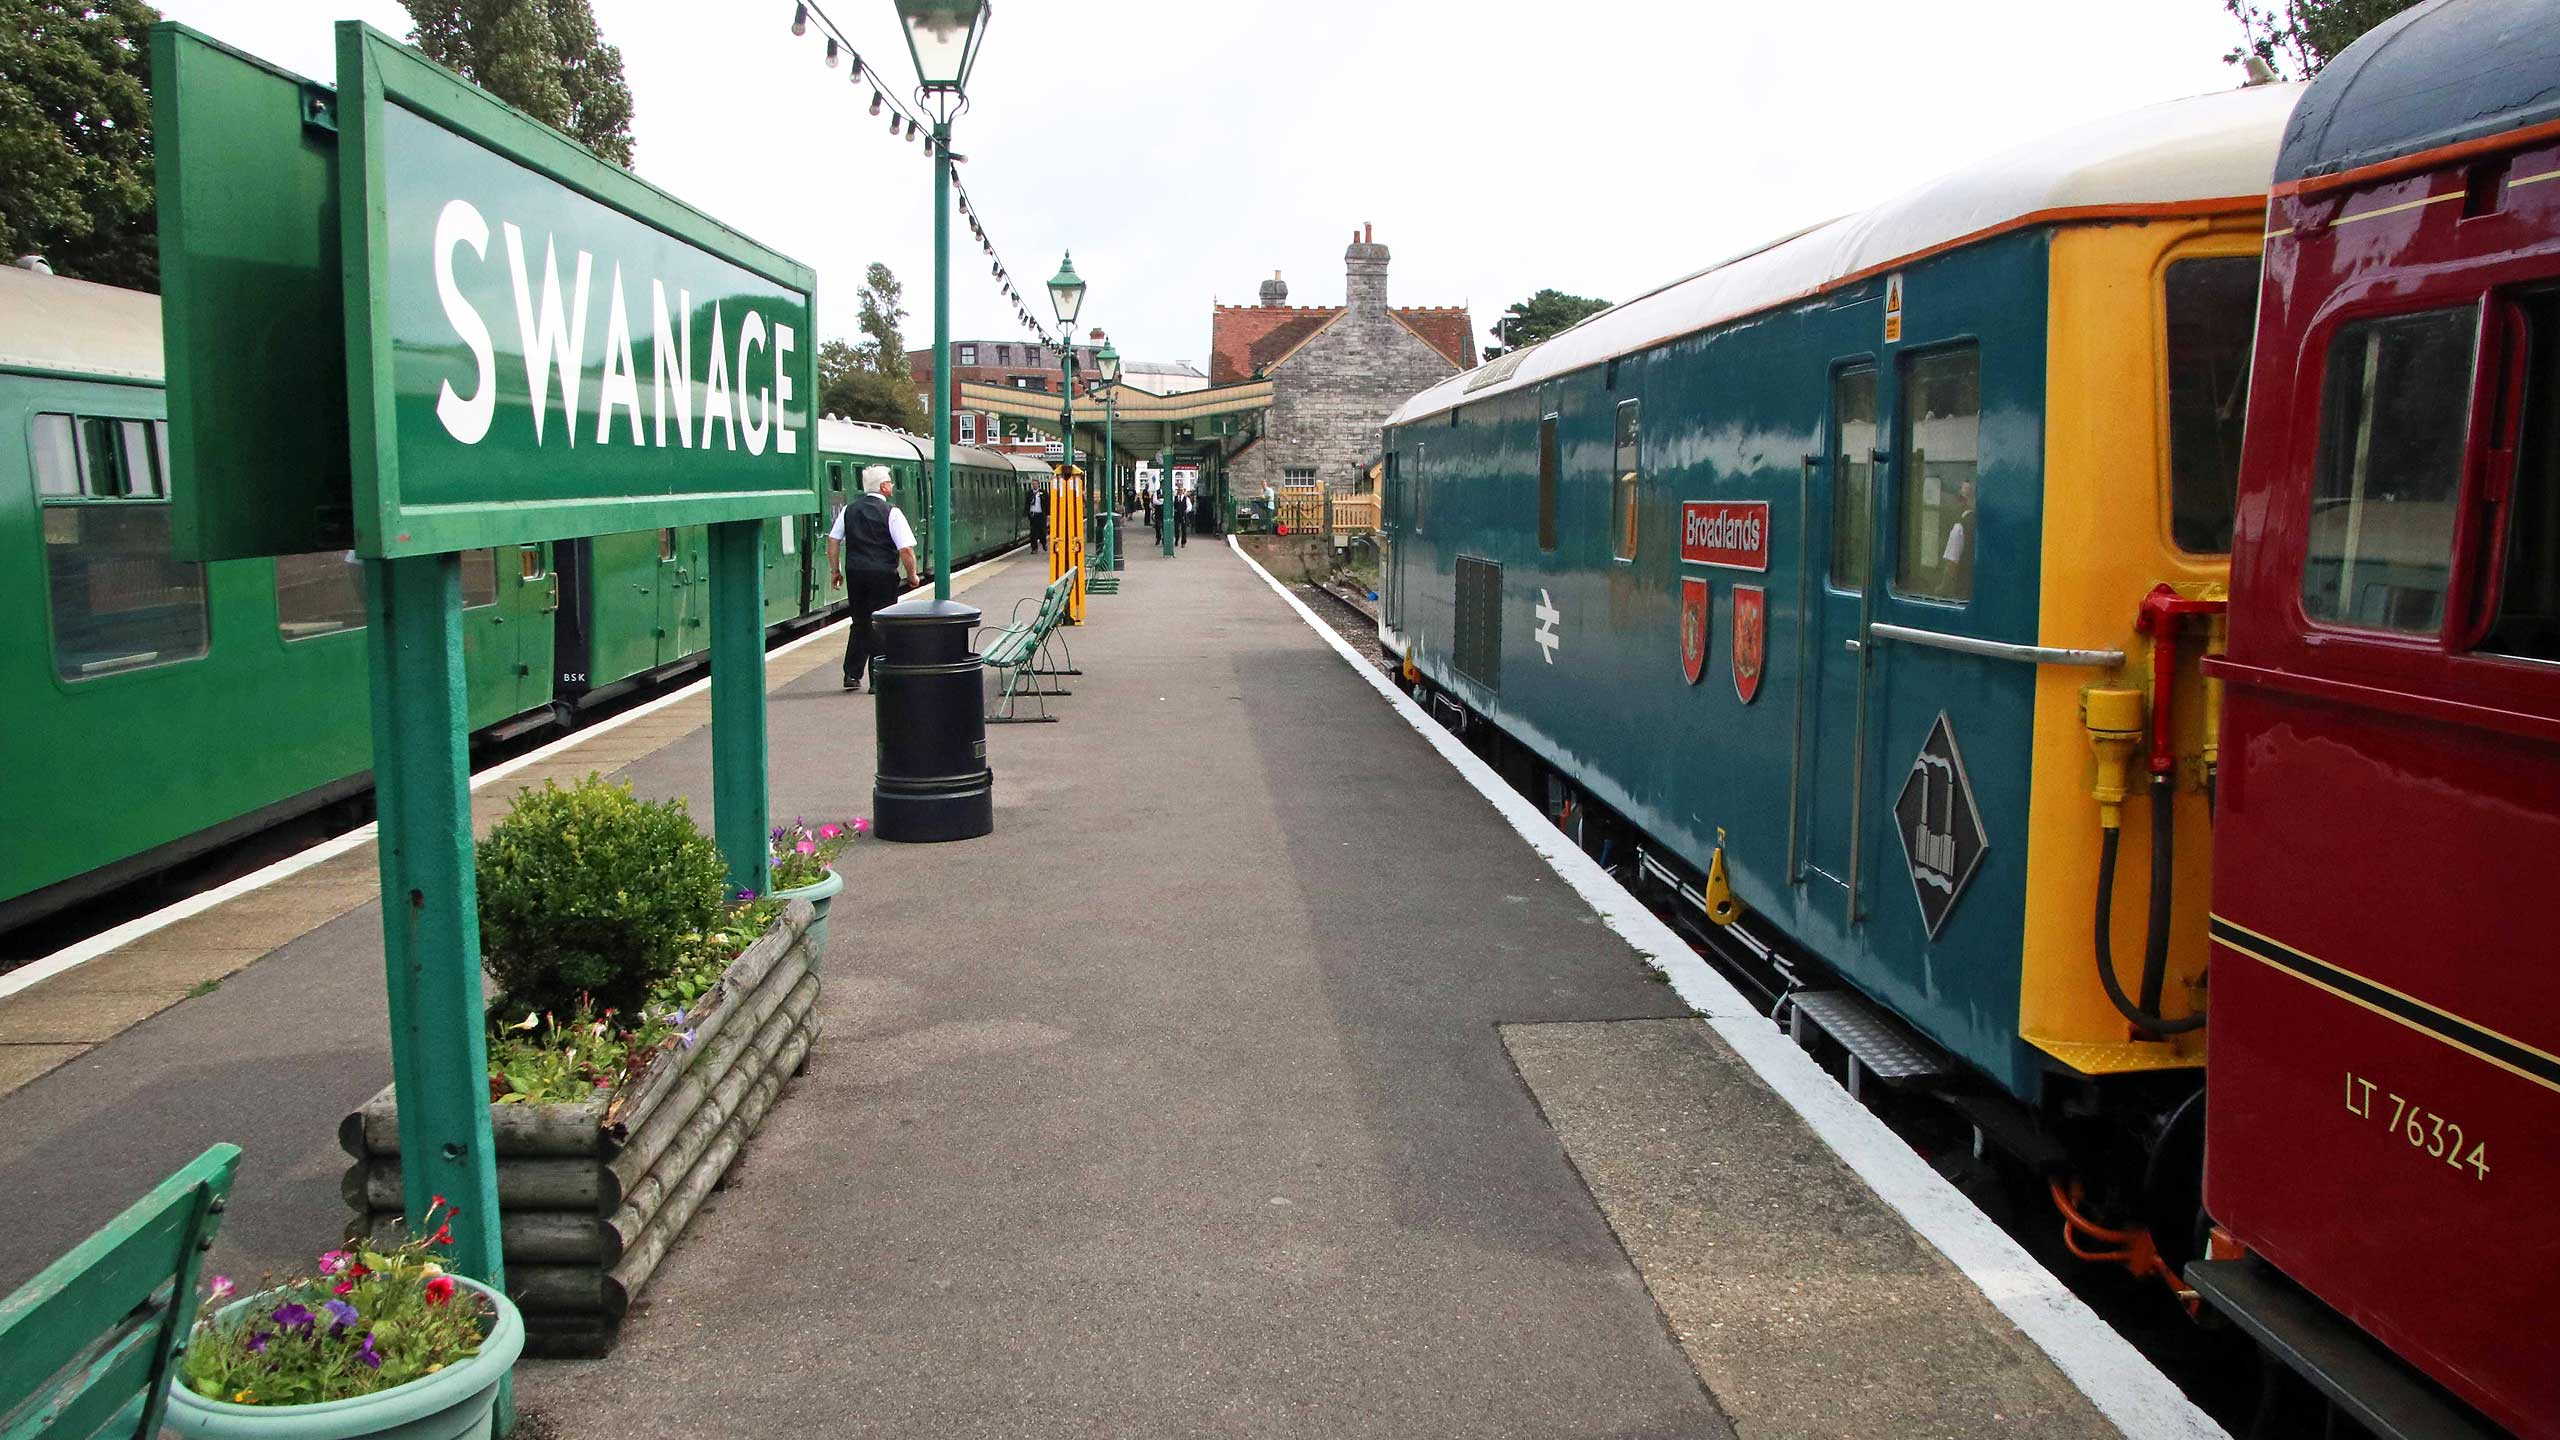 Purbeck Community Rail Partnership Sliding Banner Swanage Railway Station 28 2560x1440px